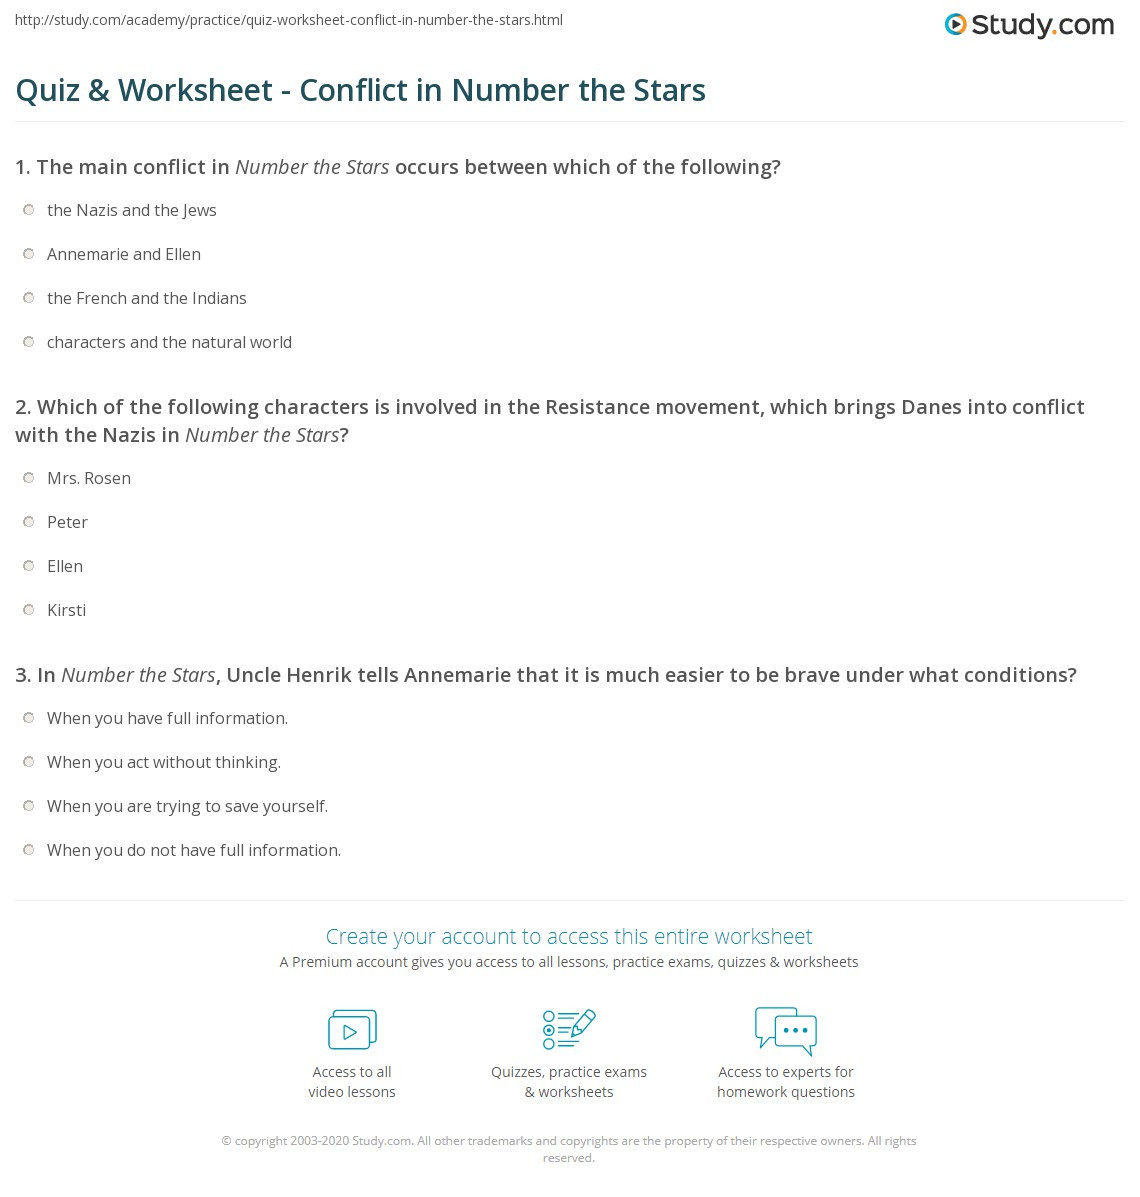 quiz worksheet conflict in number the stars